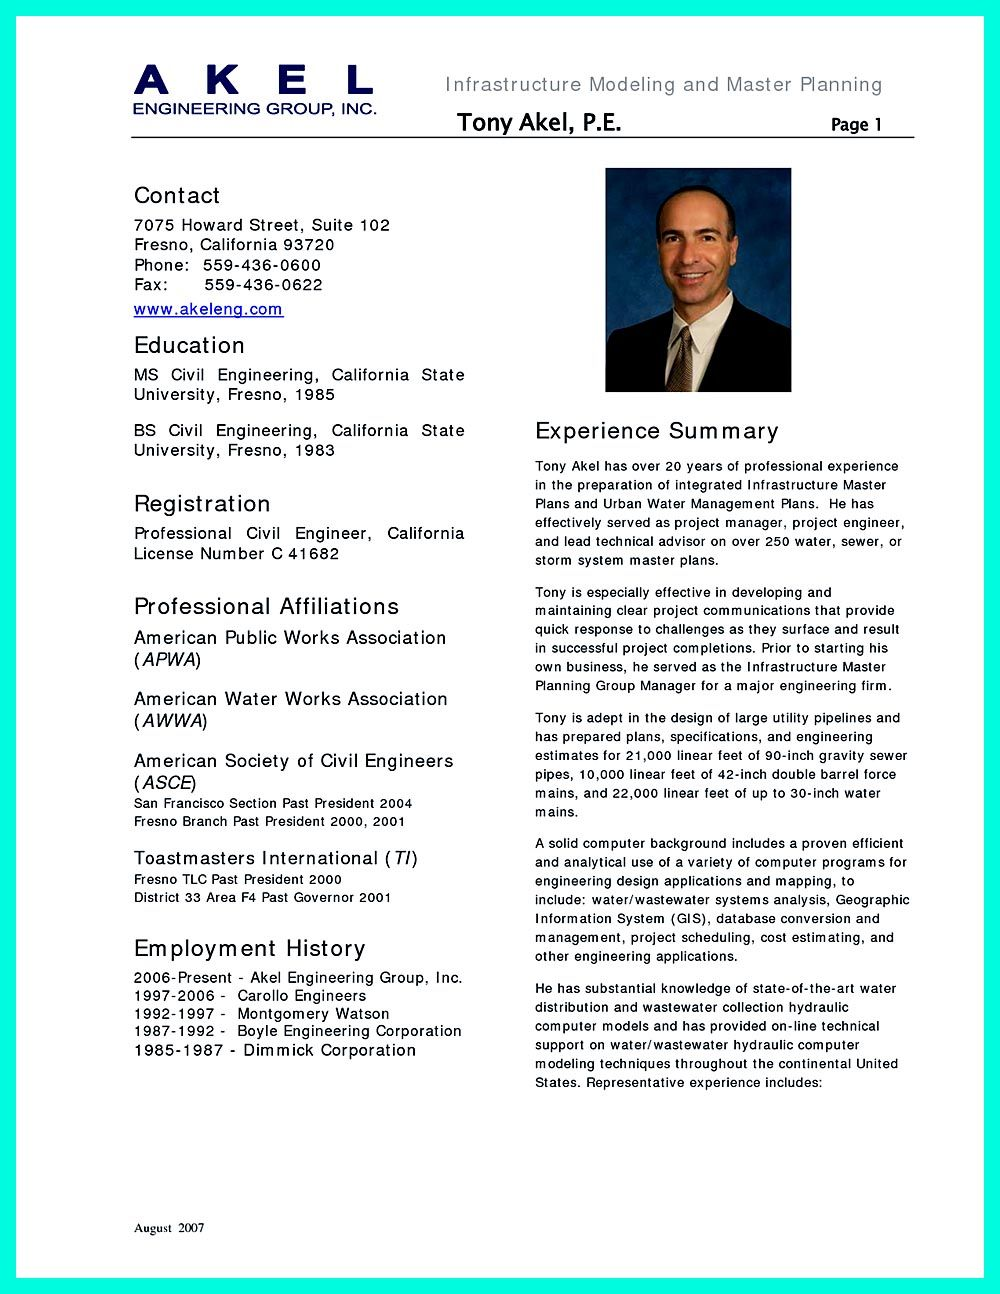 Resume Download Template There Are So Many Civil Engineering Resume Samples You Can